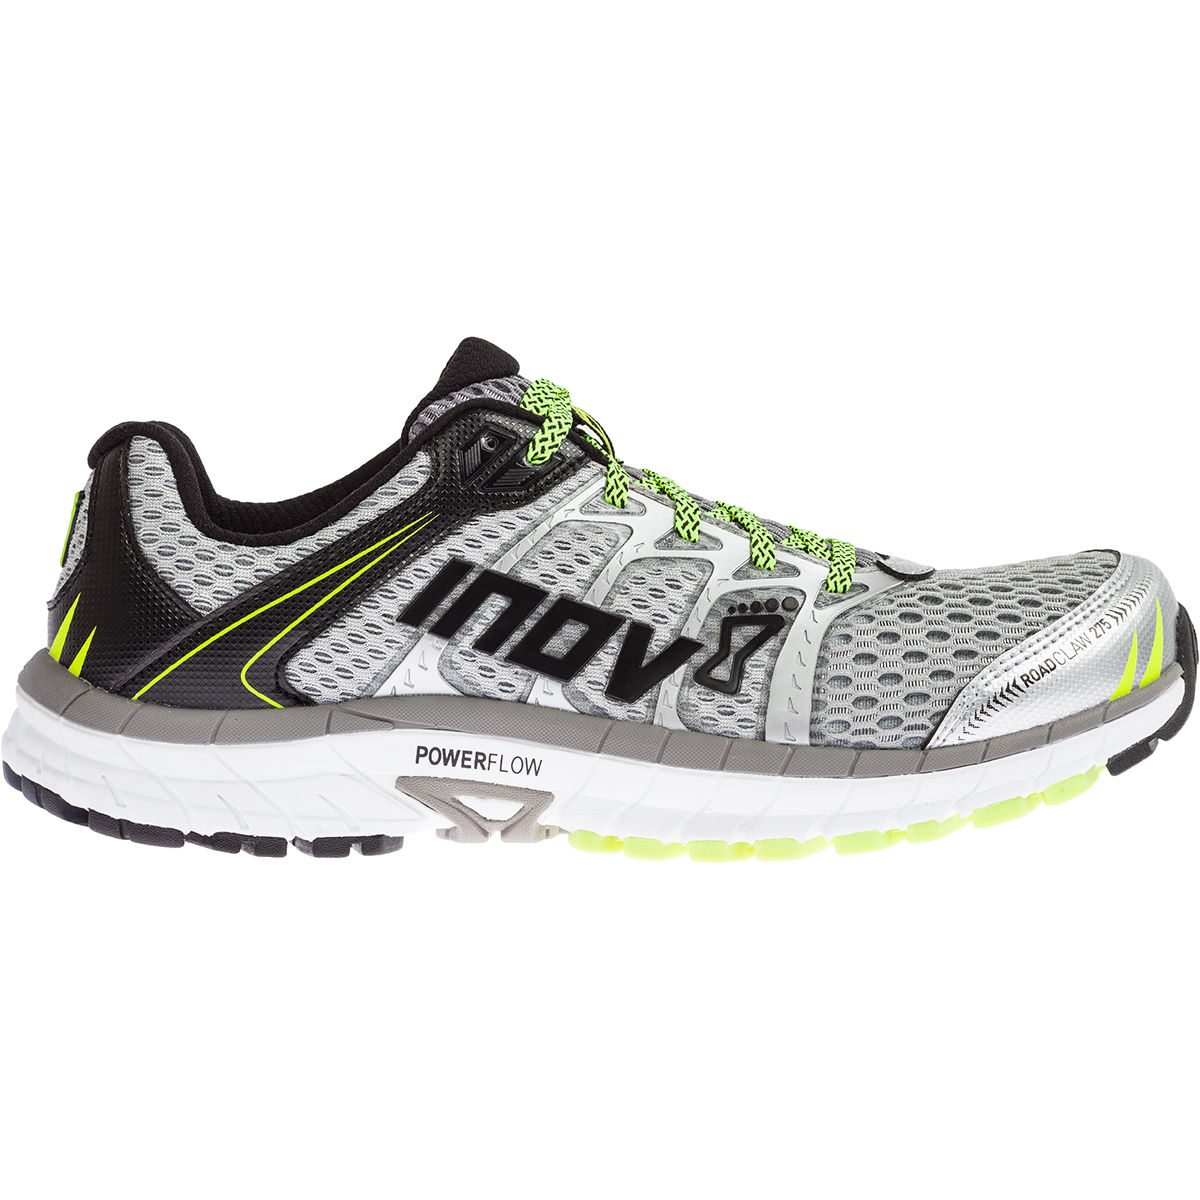 Chaussures Inov-8 Roadclaw 275 (AH16) - 11 UK Silver/Grey Chaussures de running amorties